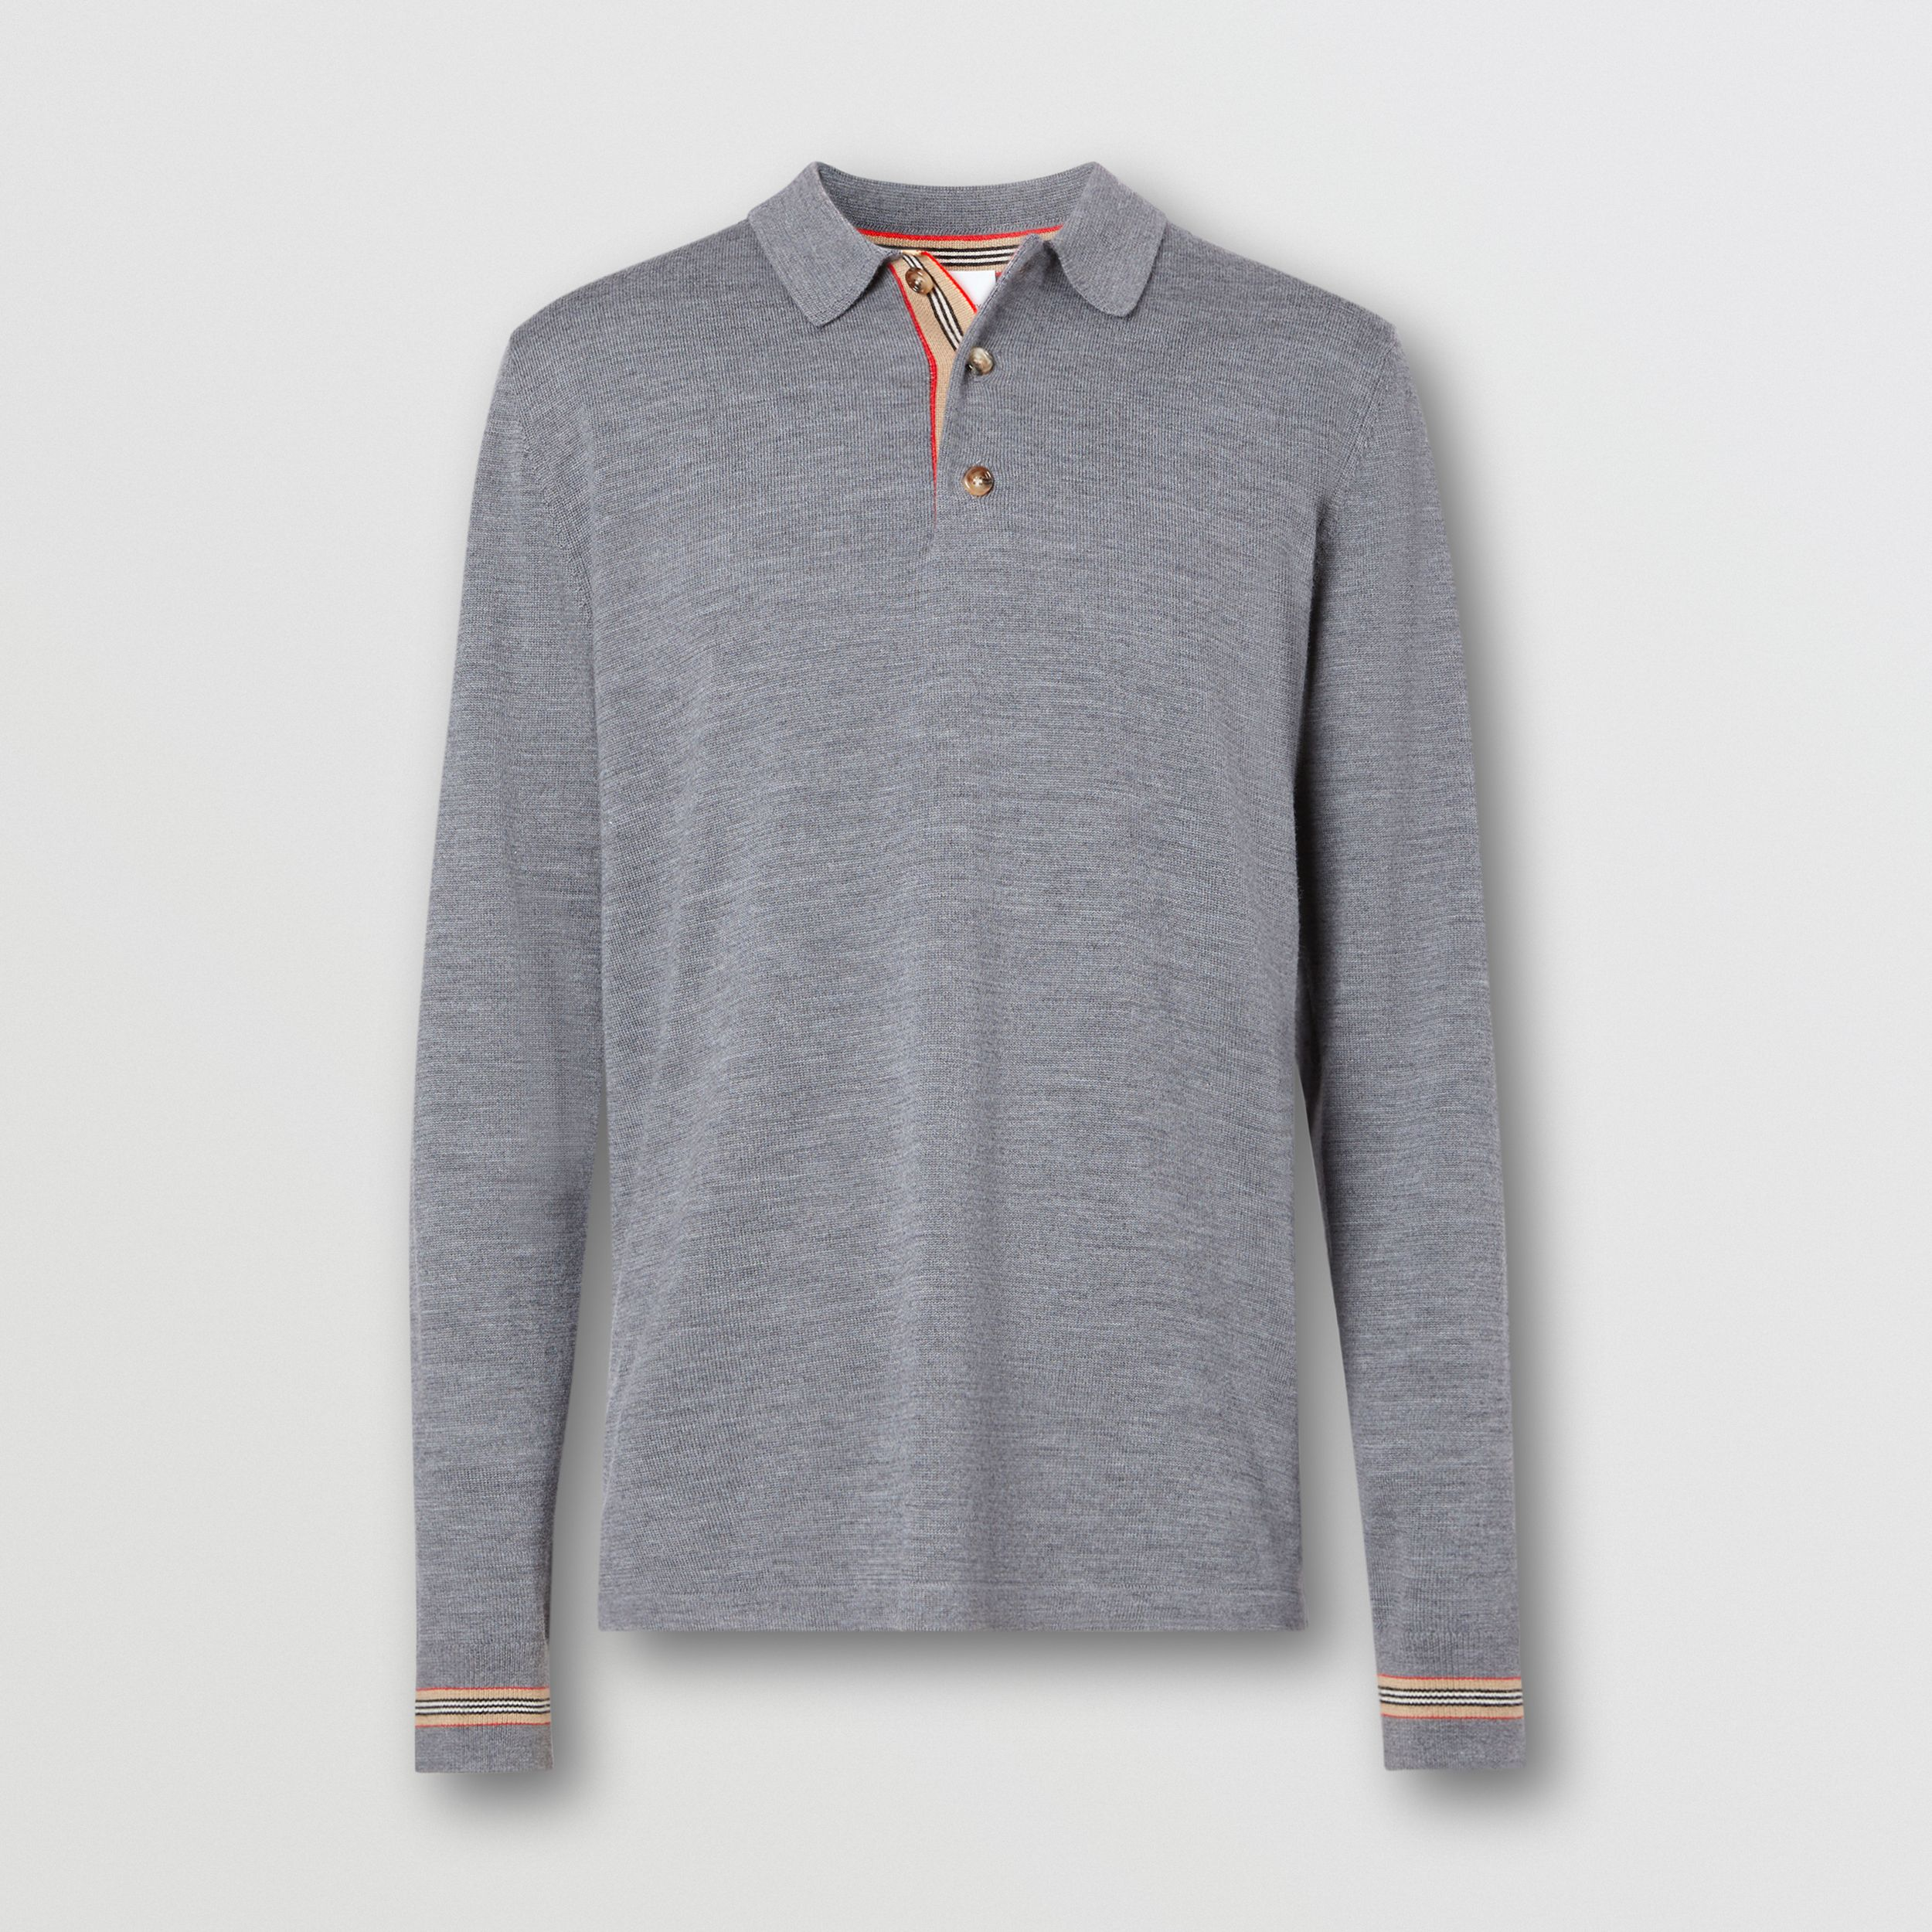 Long-sleeve Icon Stripe Detail Merino Wool Polo Shirt in Mid Grey Melange - Men | Burberry - 4